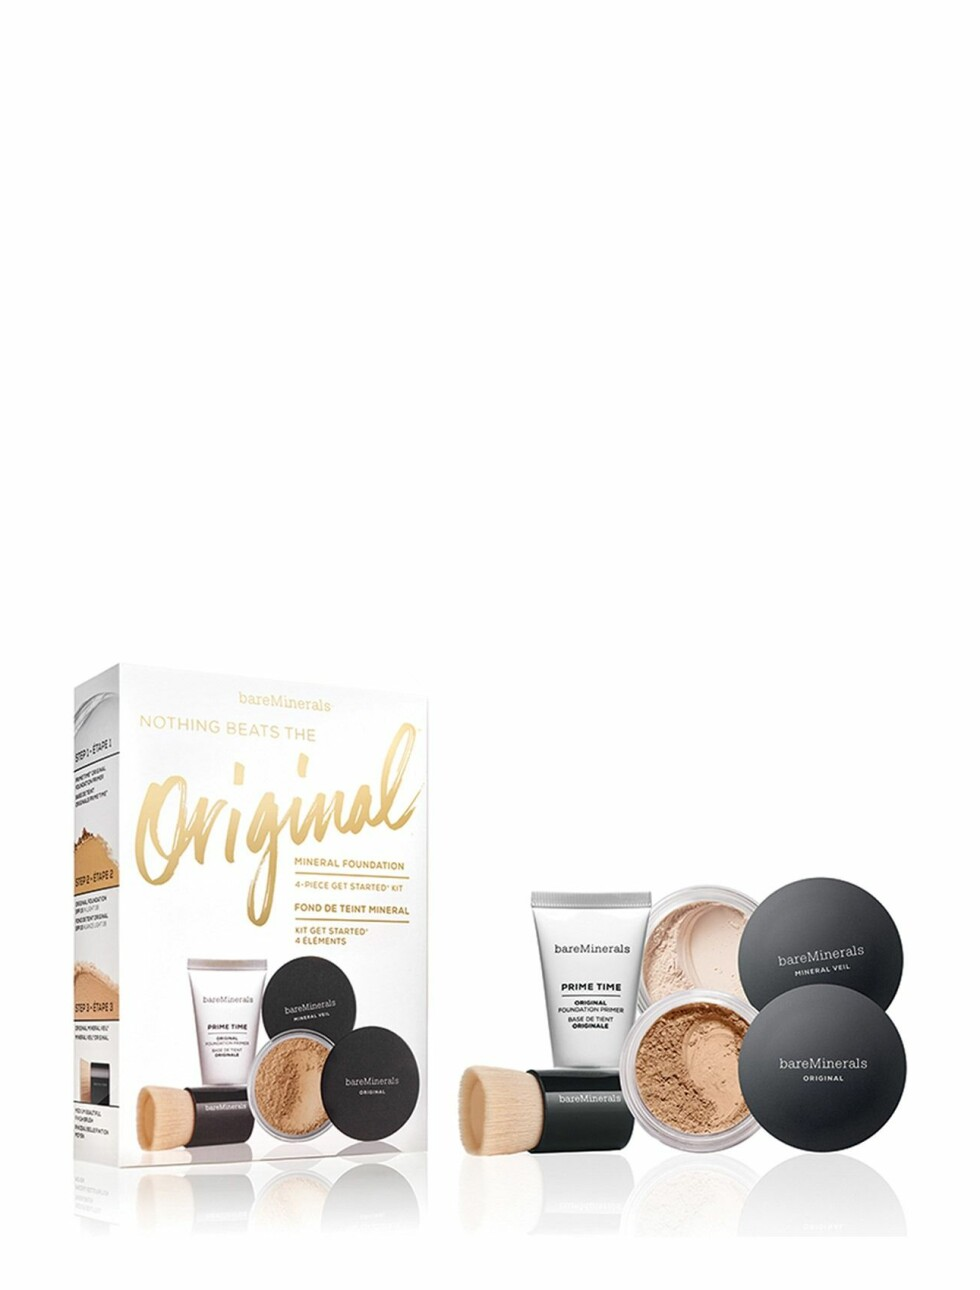 Starter kit fra bareMinerals |499,-| https://www.boozt.com/no/no/bareminerals/grab-go-get-starter-kit_18446136/18446150?navId=67362&group=listing&position=1500000